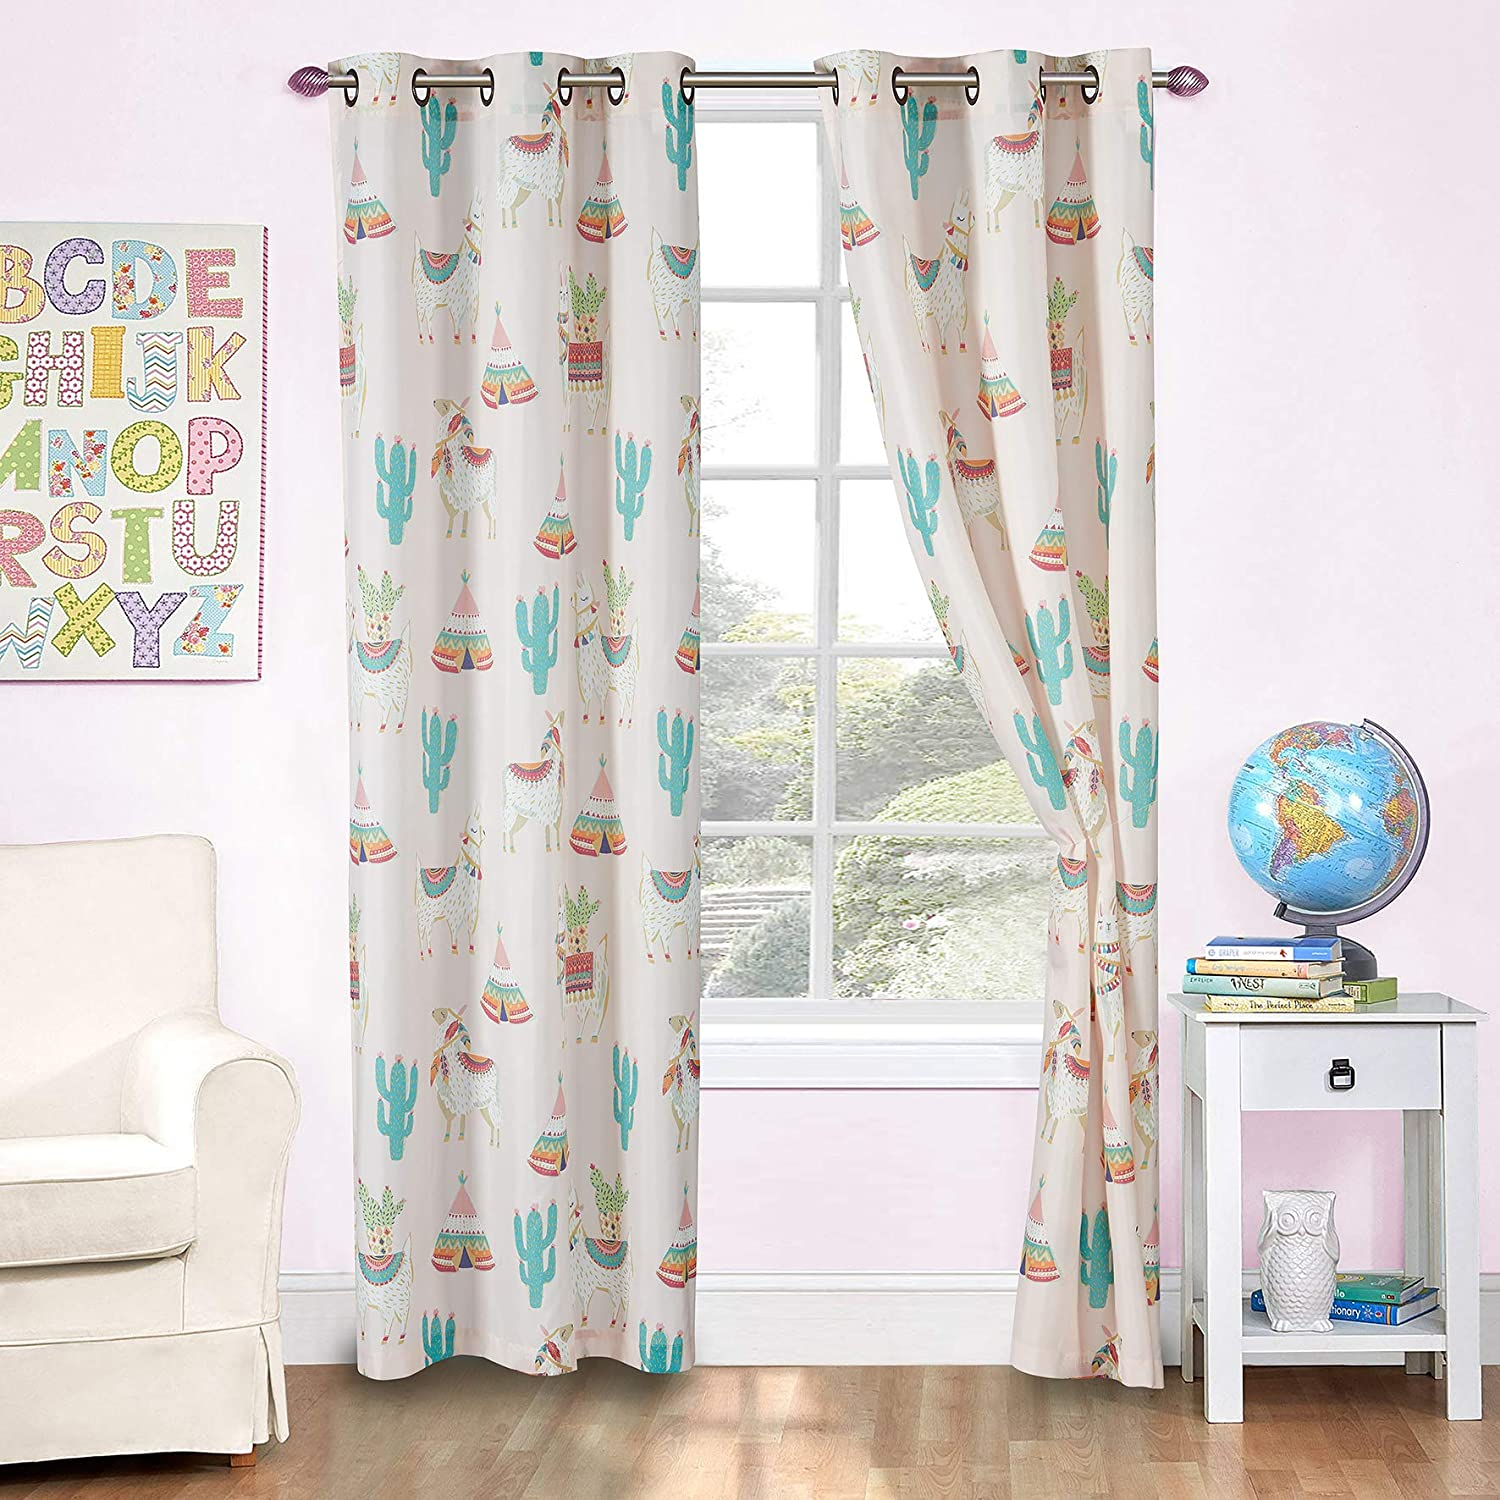 Kids Zone Home Linen 2 Panel Curtain Set with Grommet for Boys Girls Teens Bedroom Multicolor Set (Llama Cactus Tee Pee Multi Color)